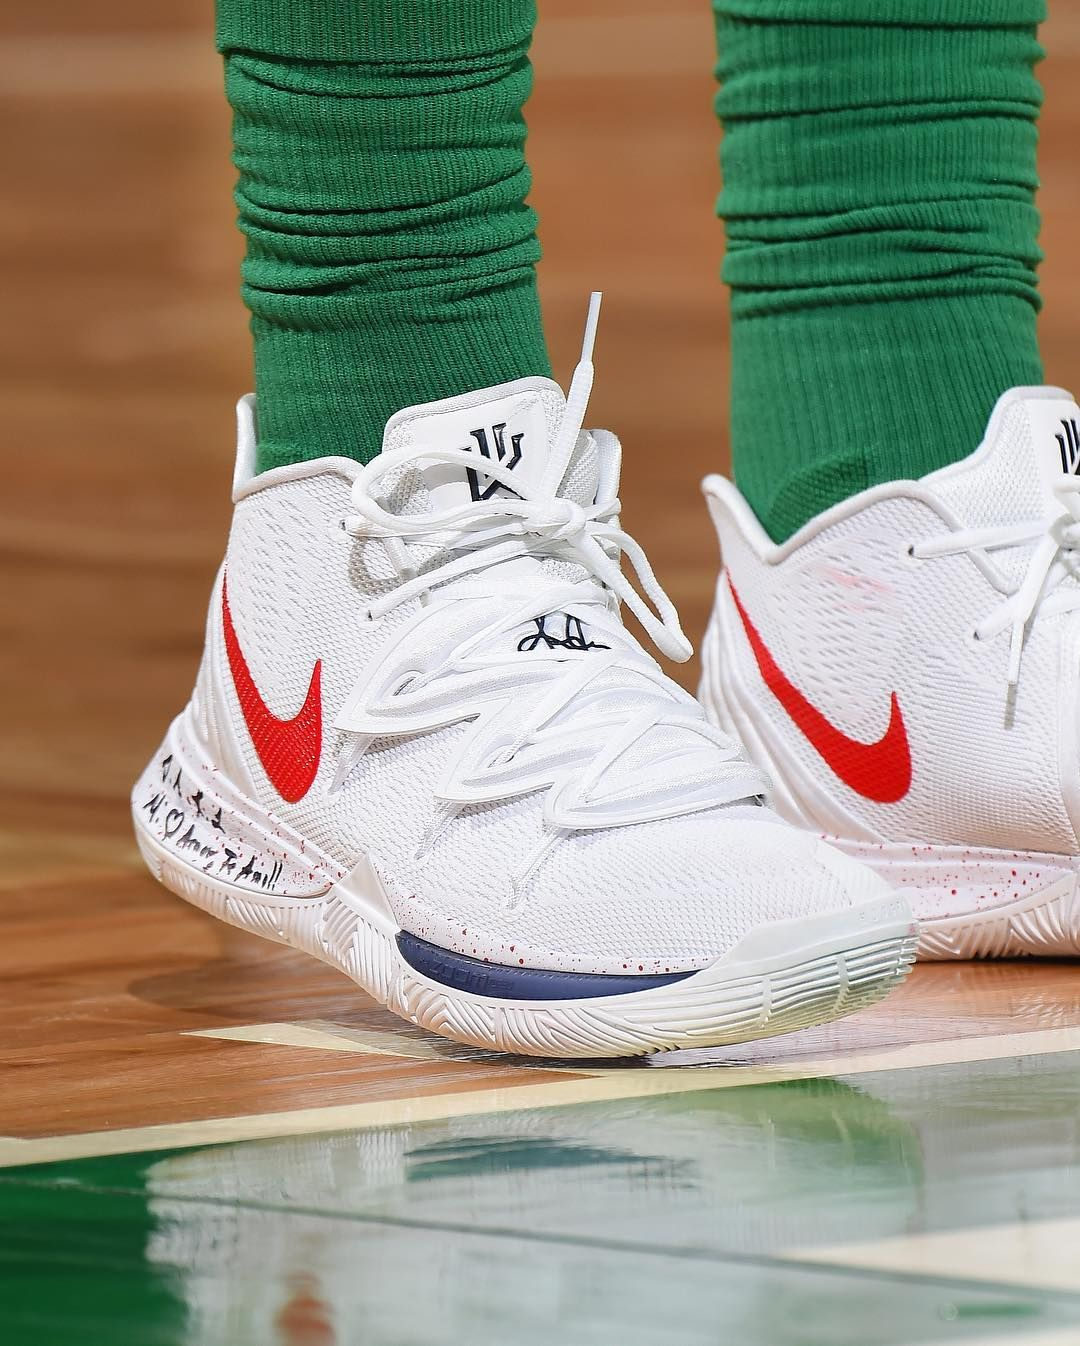 a1ce01819ec2 ... Kyrie Irving by Elizabeth Dibben. Image may contain  shoes